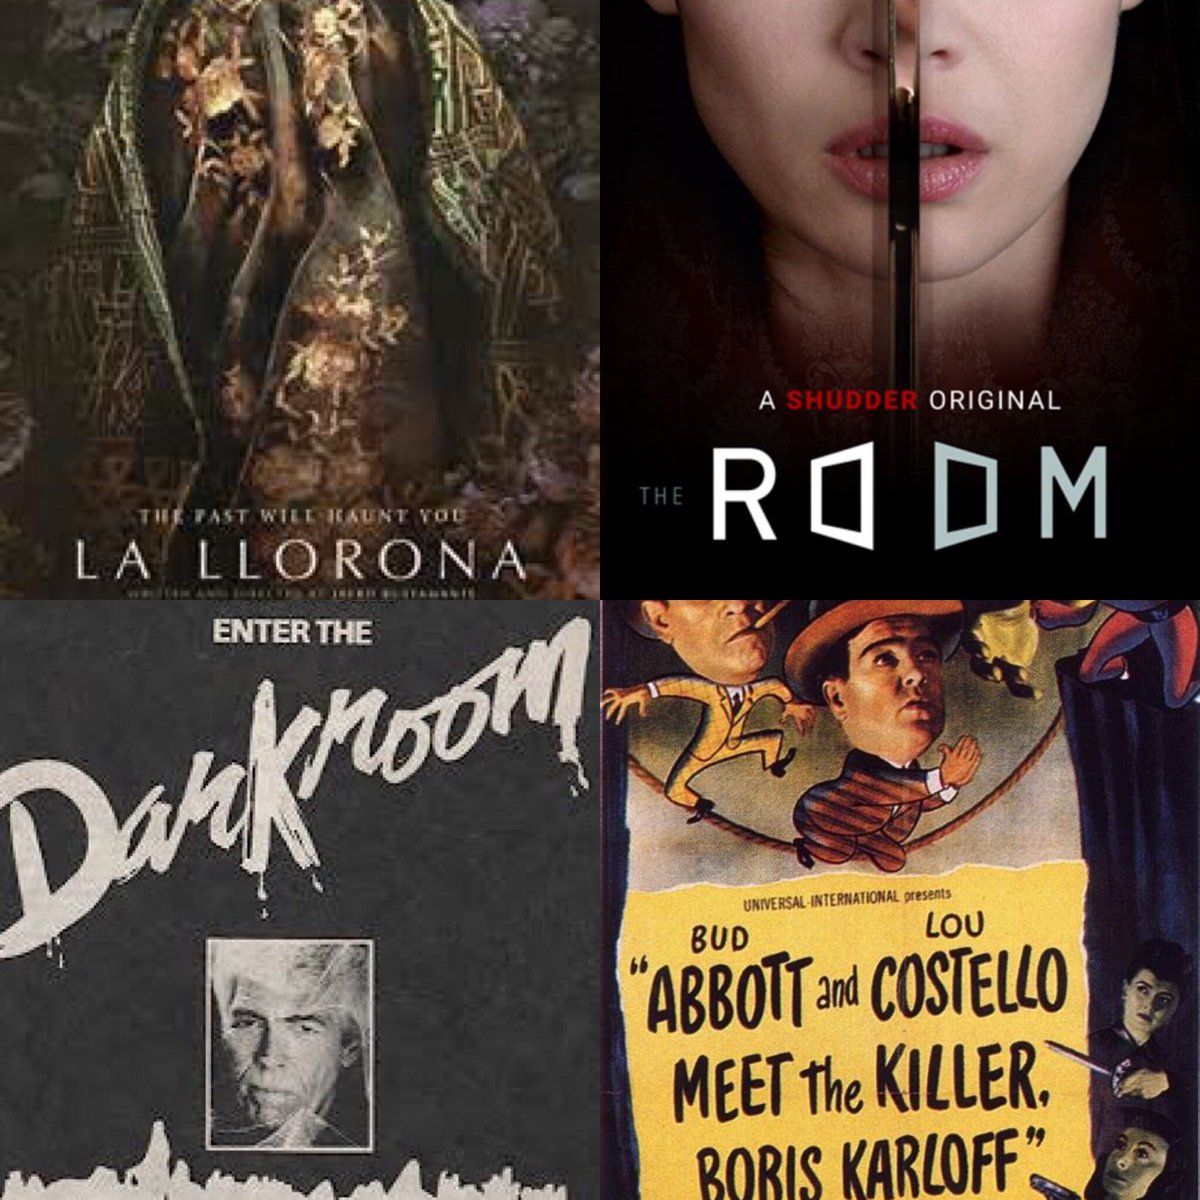 Weekend #quarantine watch list wrap up- the @shudder flick #lallorona is perfect 4 fans of @A24 style horror. 4 me it was 97mins of people staring. #theroom was like a muddled yet decent ep of #thetwilightzone Next up is #Darkroom an awesome old TV show. Then #abbottandcostellopic.twitter.com/PpOlZ1HivA